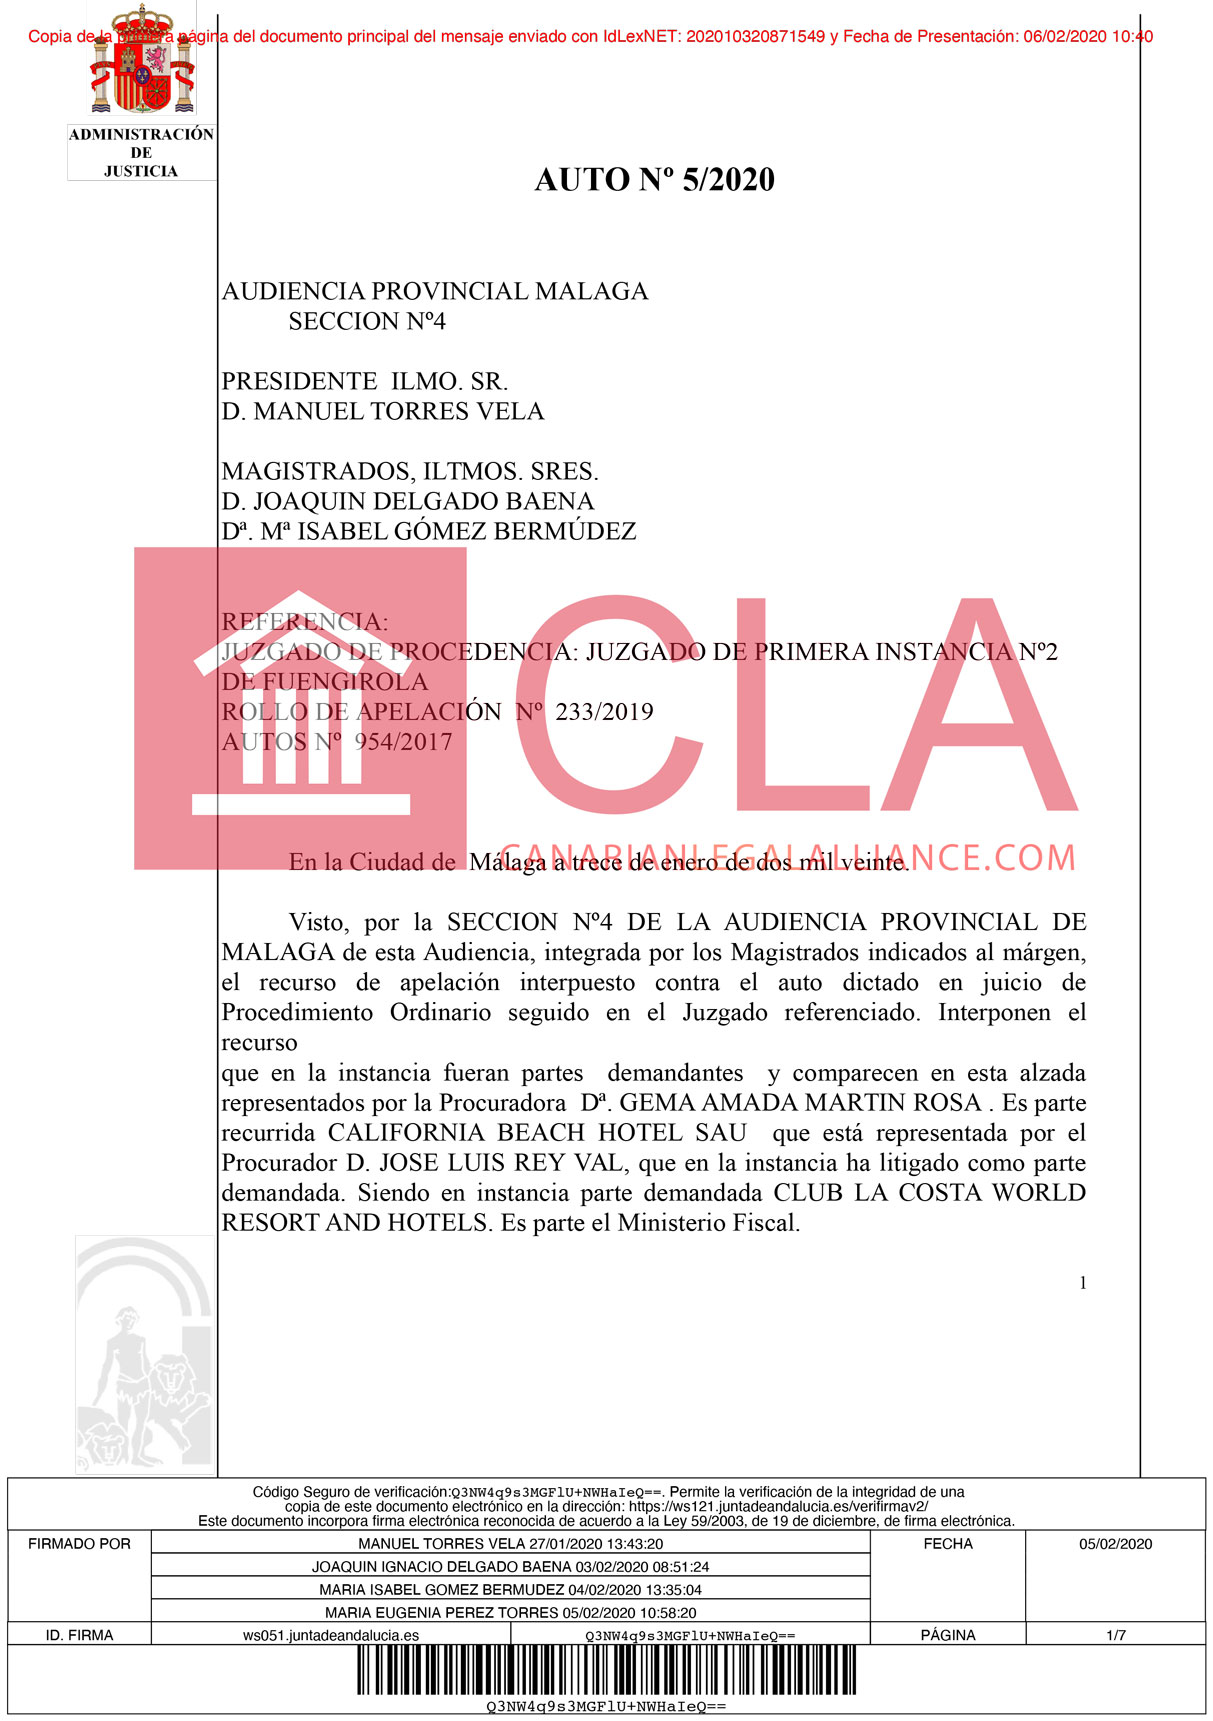 A Matter of Jurisdiction: Court Rules Against Club La Costa